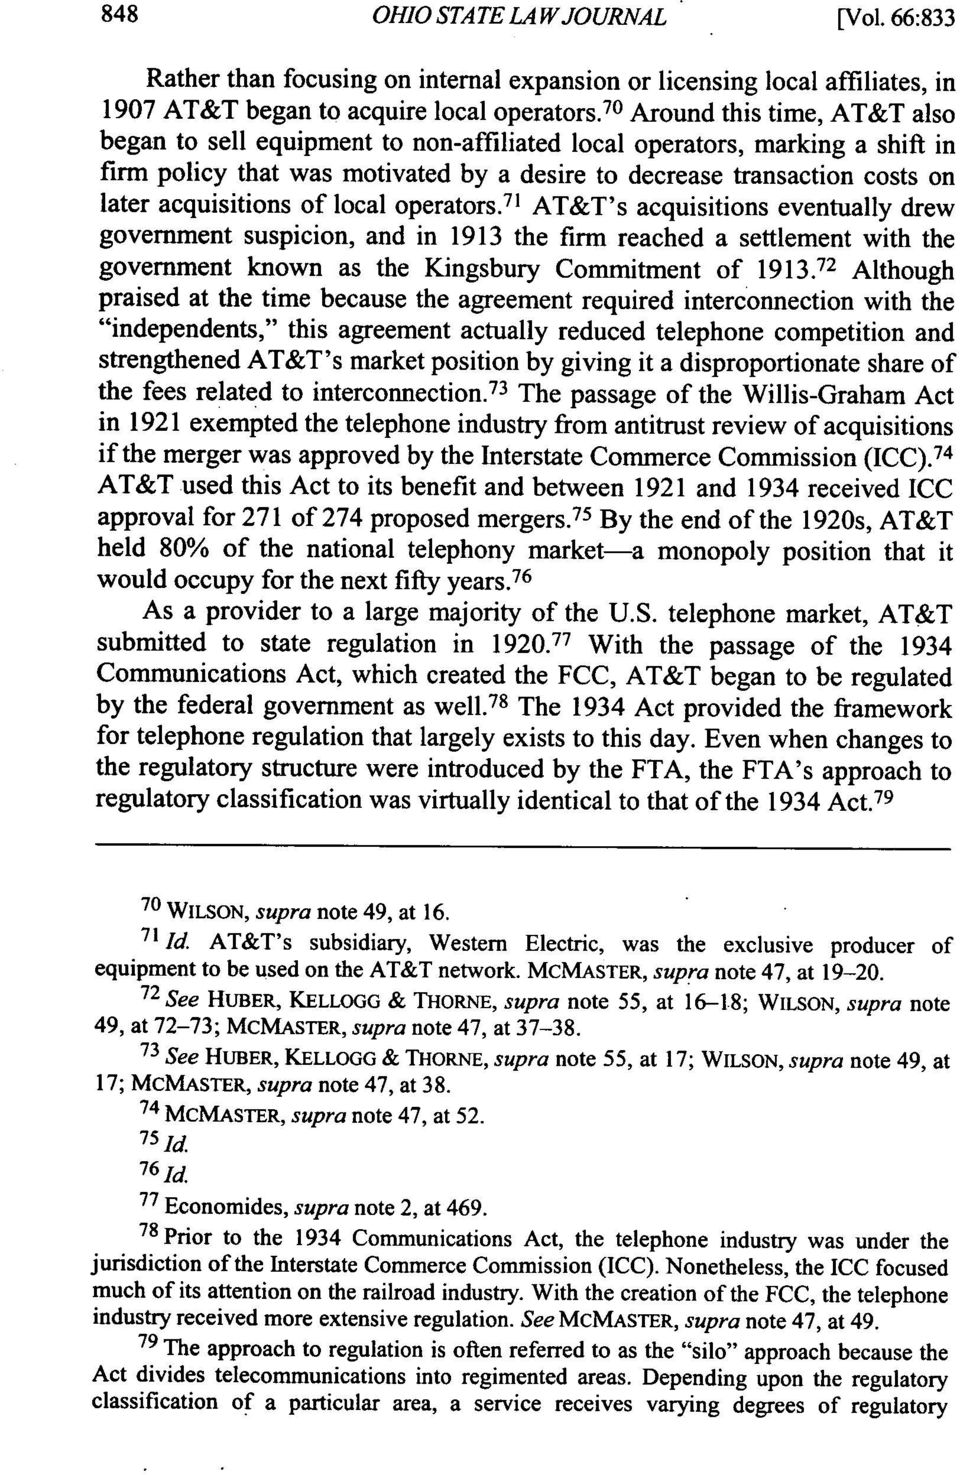 acquisitions of local operators. 71 AT&T's acquisitions eventually drew government suspicion, and in 1913 the firm reached a settlement with the government known as the Kingsbury Commitment of 1913.